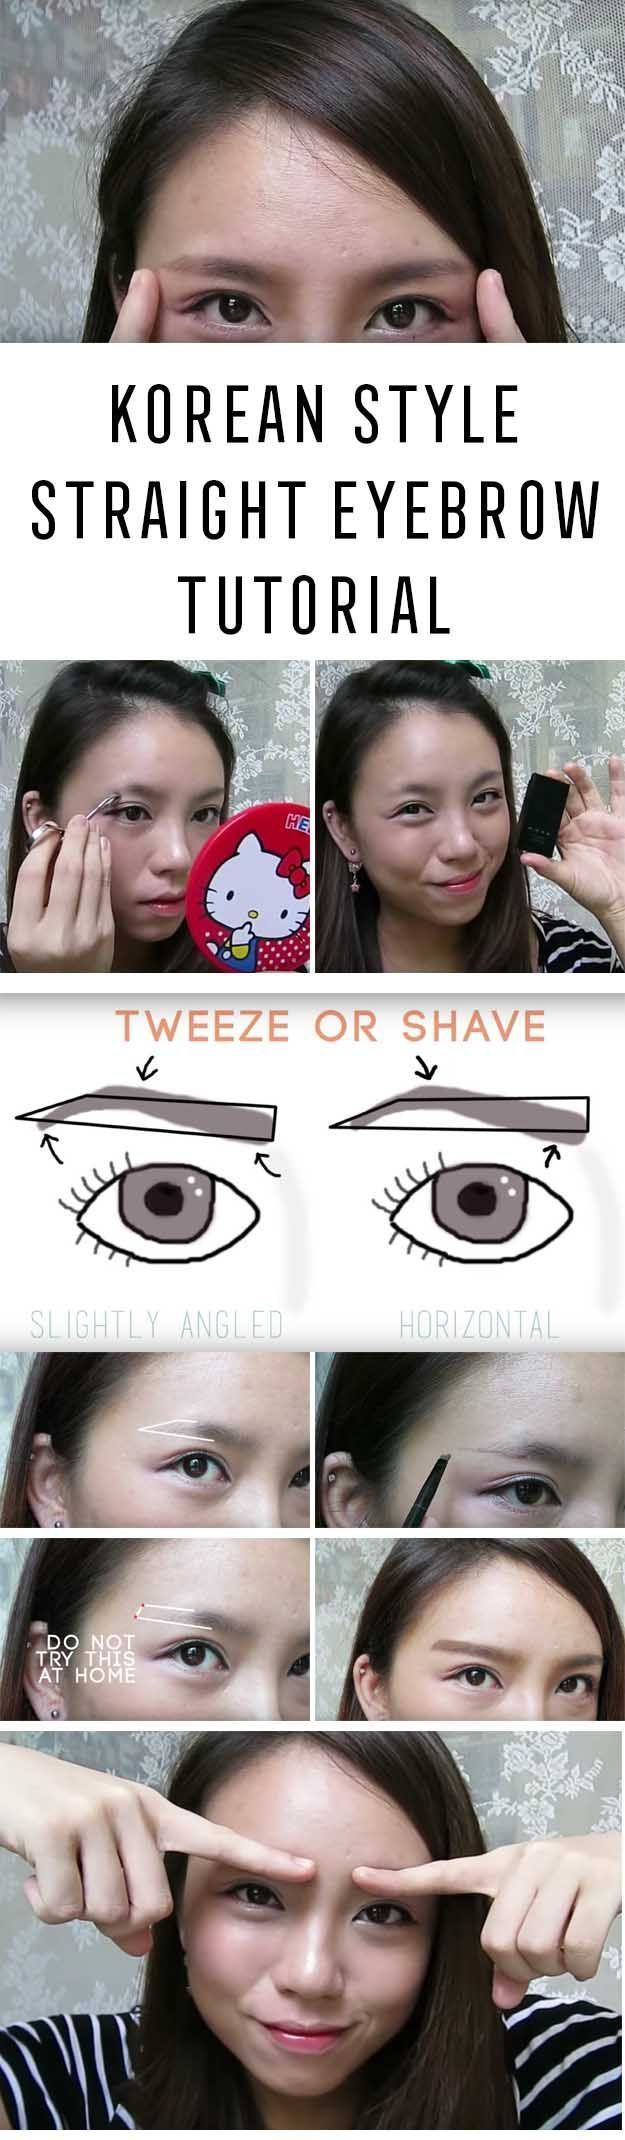 Best korean makeup tutorials how to korean style straight eyebrow best korean makeup tutorials how to korean style straight eyebrow tutorial natural step by step tutorials for ulzzang pony puppy eyes eyeshad baditri Image collections